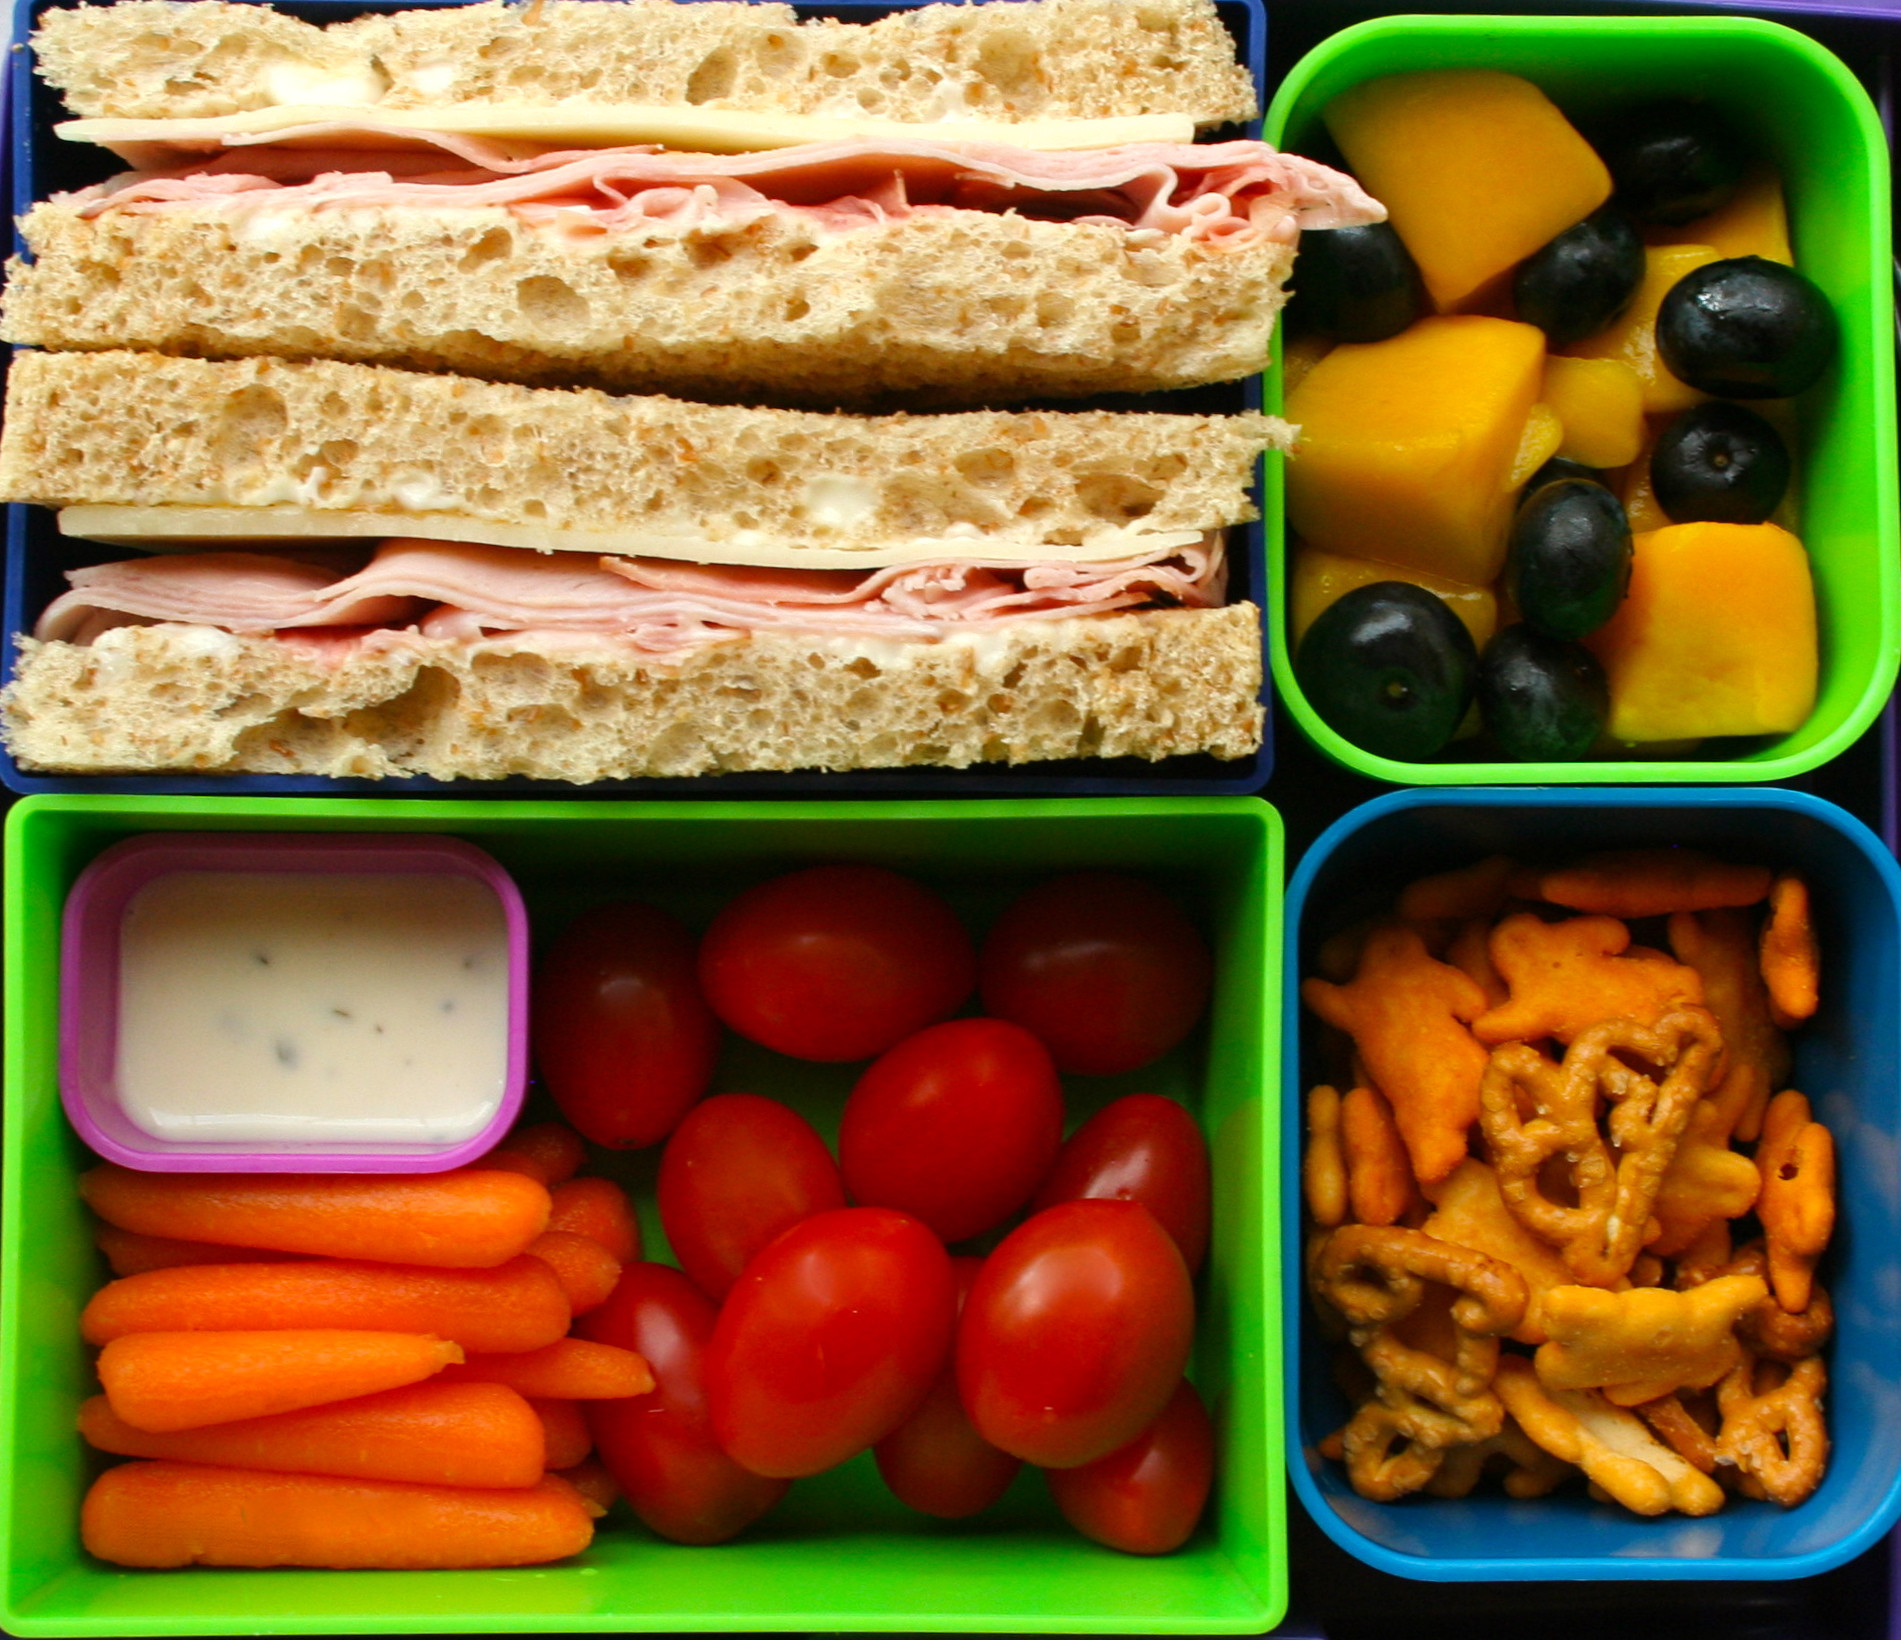 Healthy Foods For Kids' School Lunches  Top 3 healthy lunches